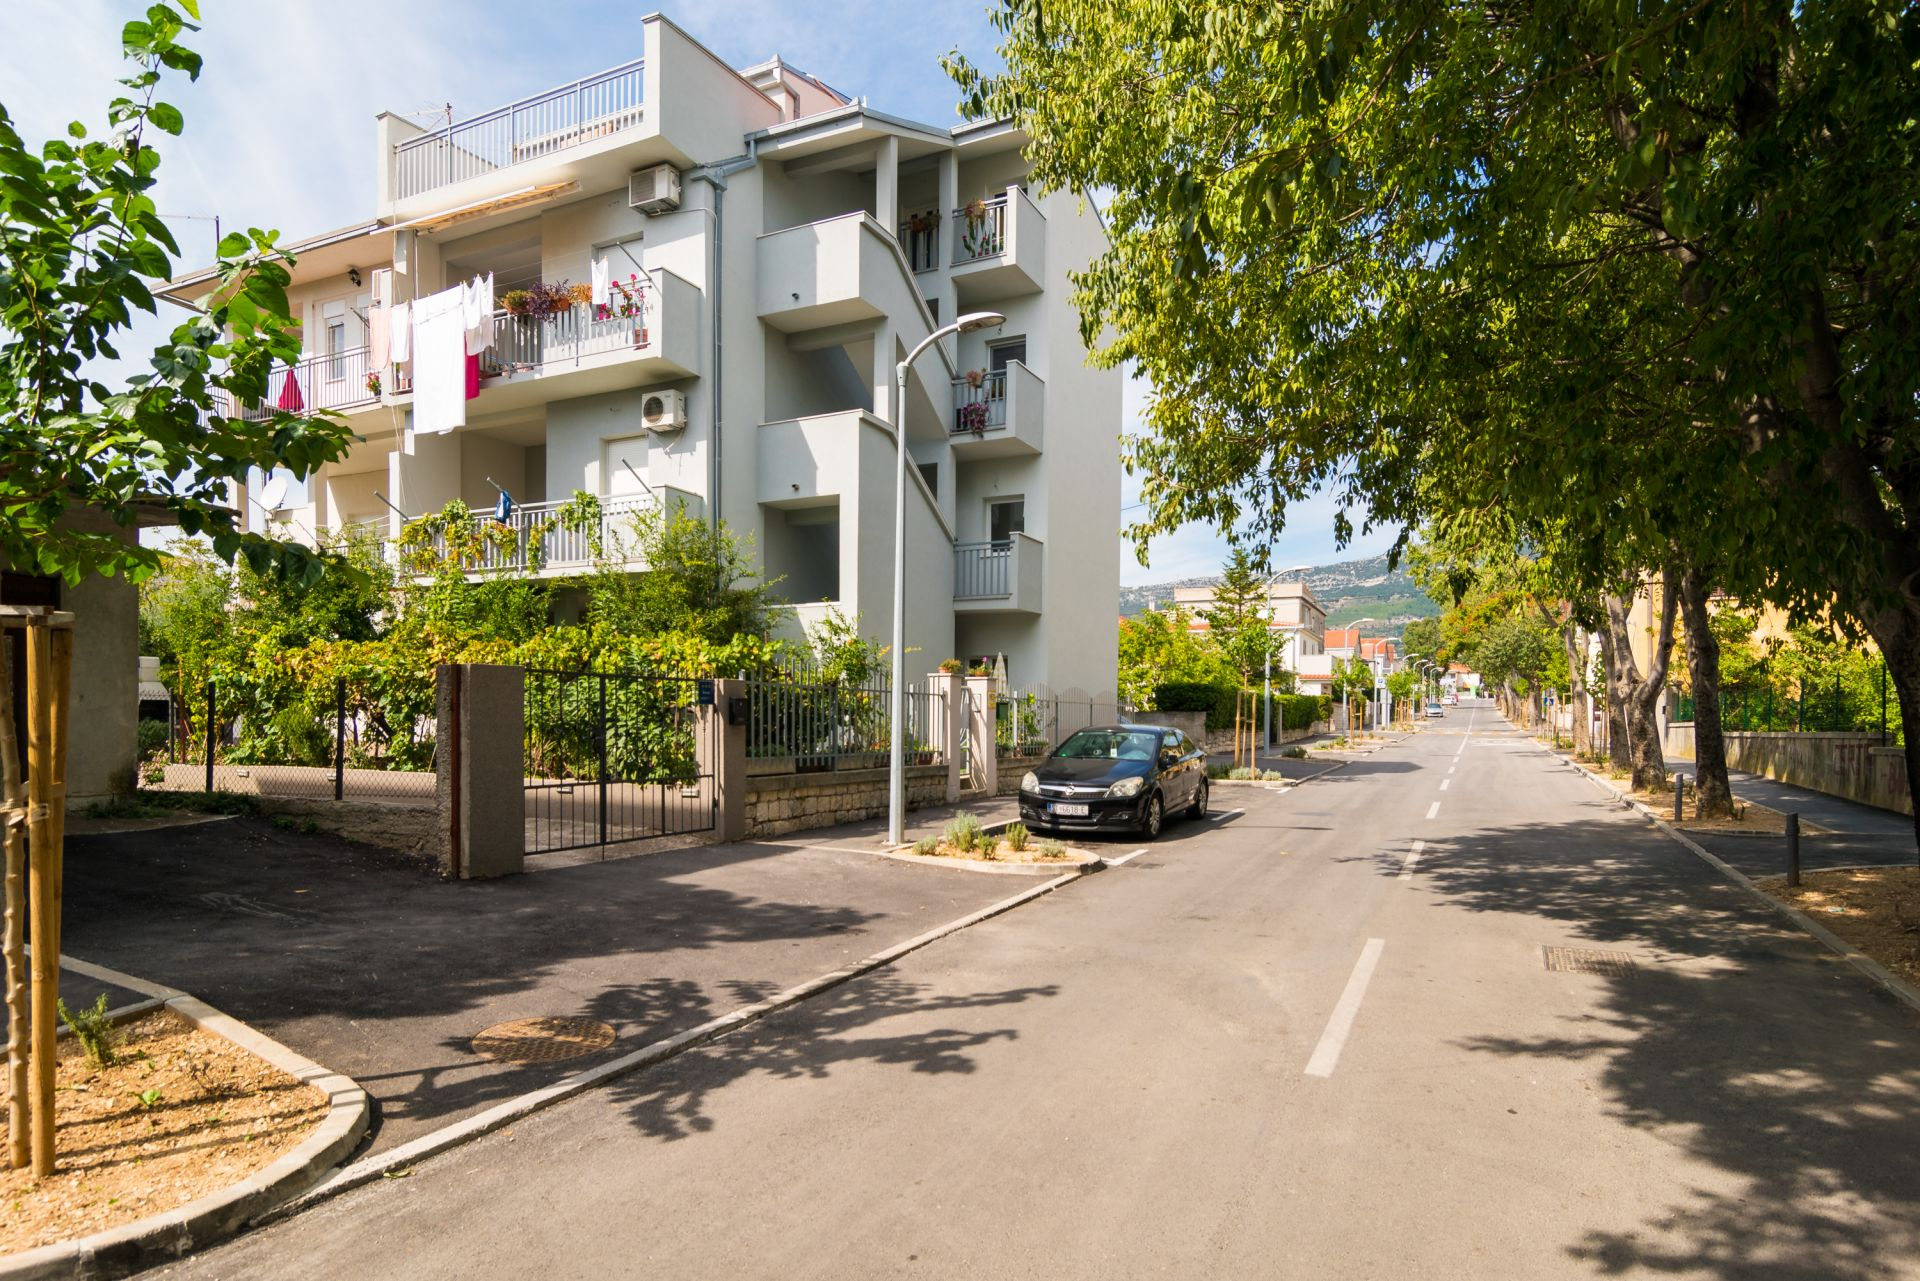 Apartments Jurica - 100 m from sea: A1(3+2), A3(2+2) Kastel Novi - Riviera Split